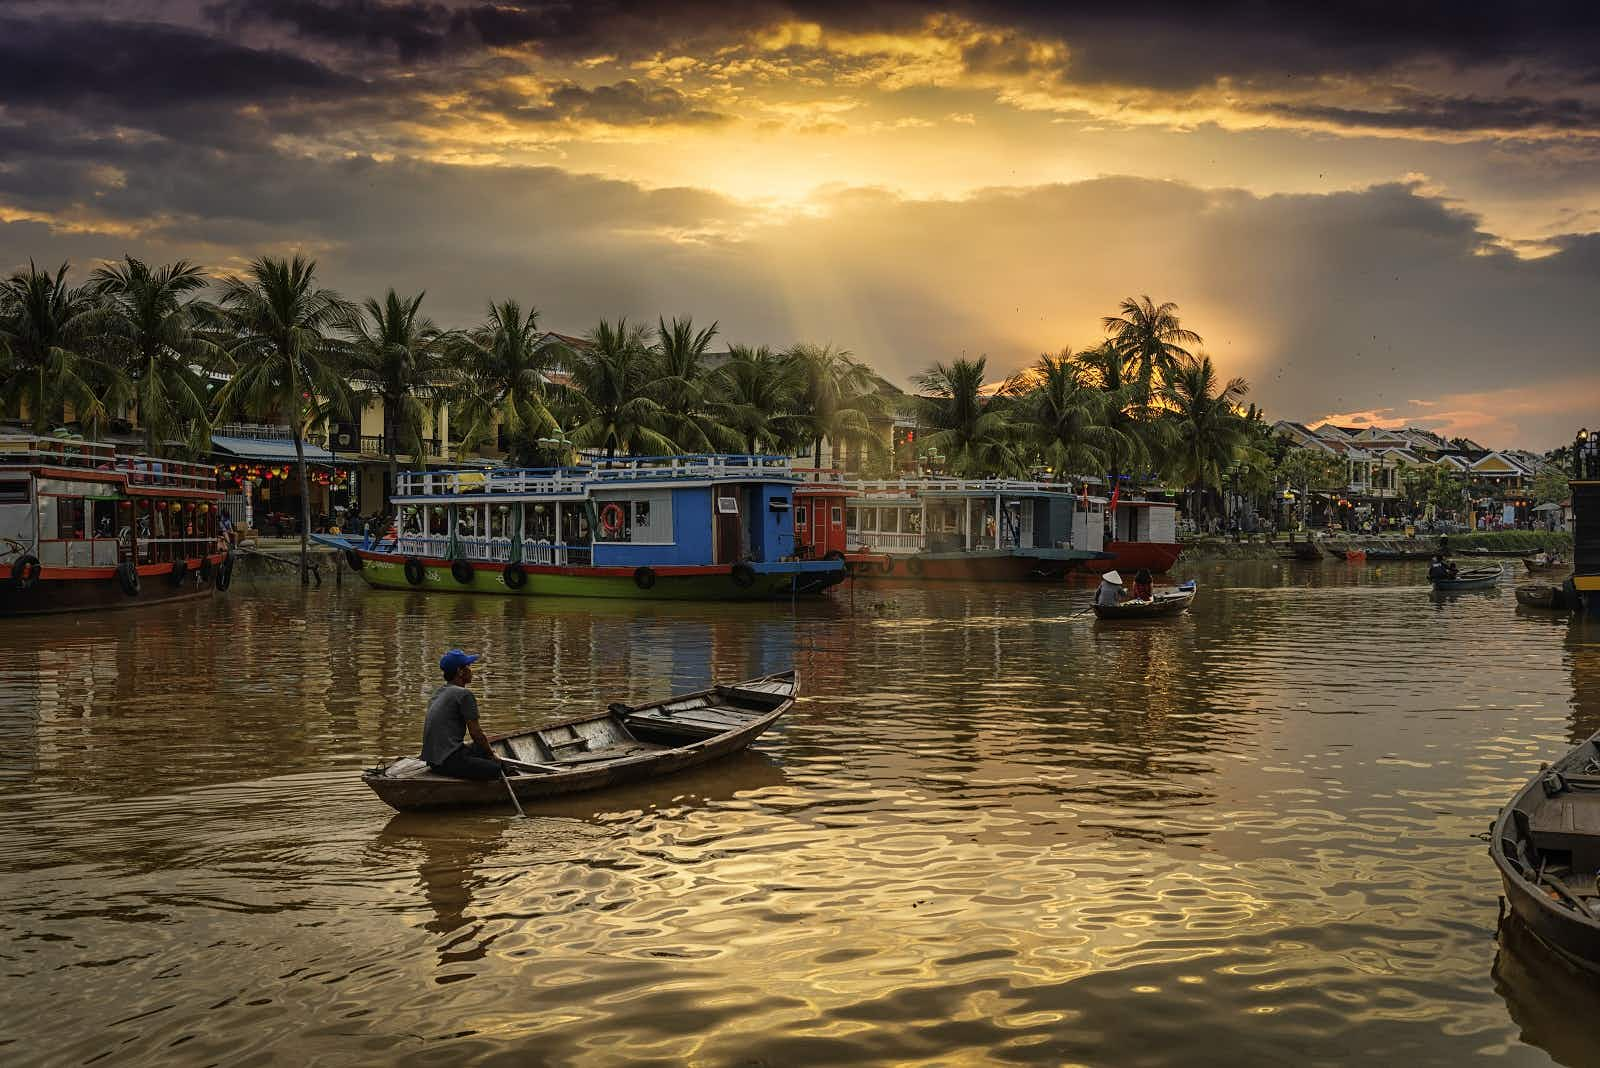 Sunset over Thu Bon River in Hoi An © Domingo Leiva / Getty Images